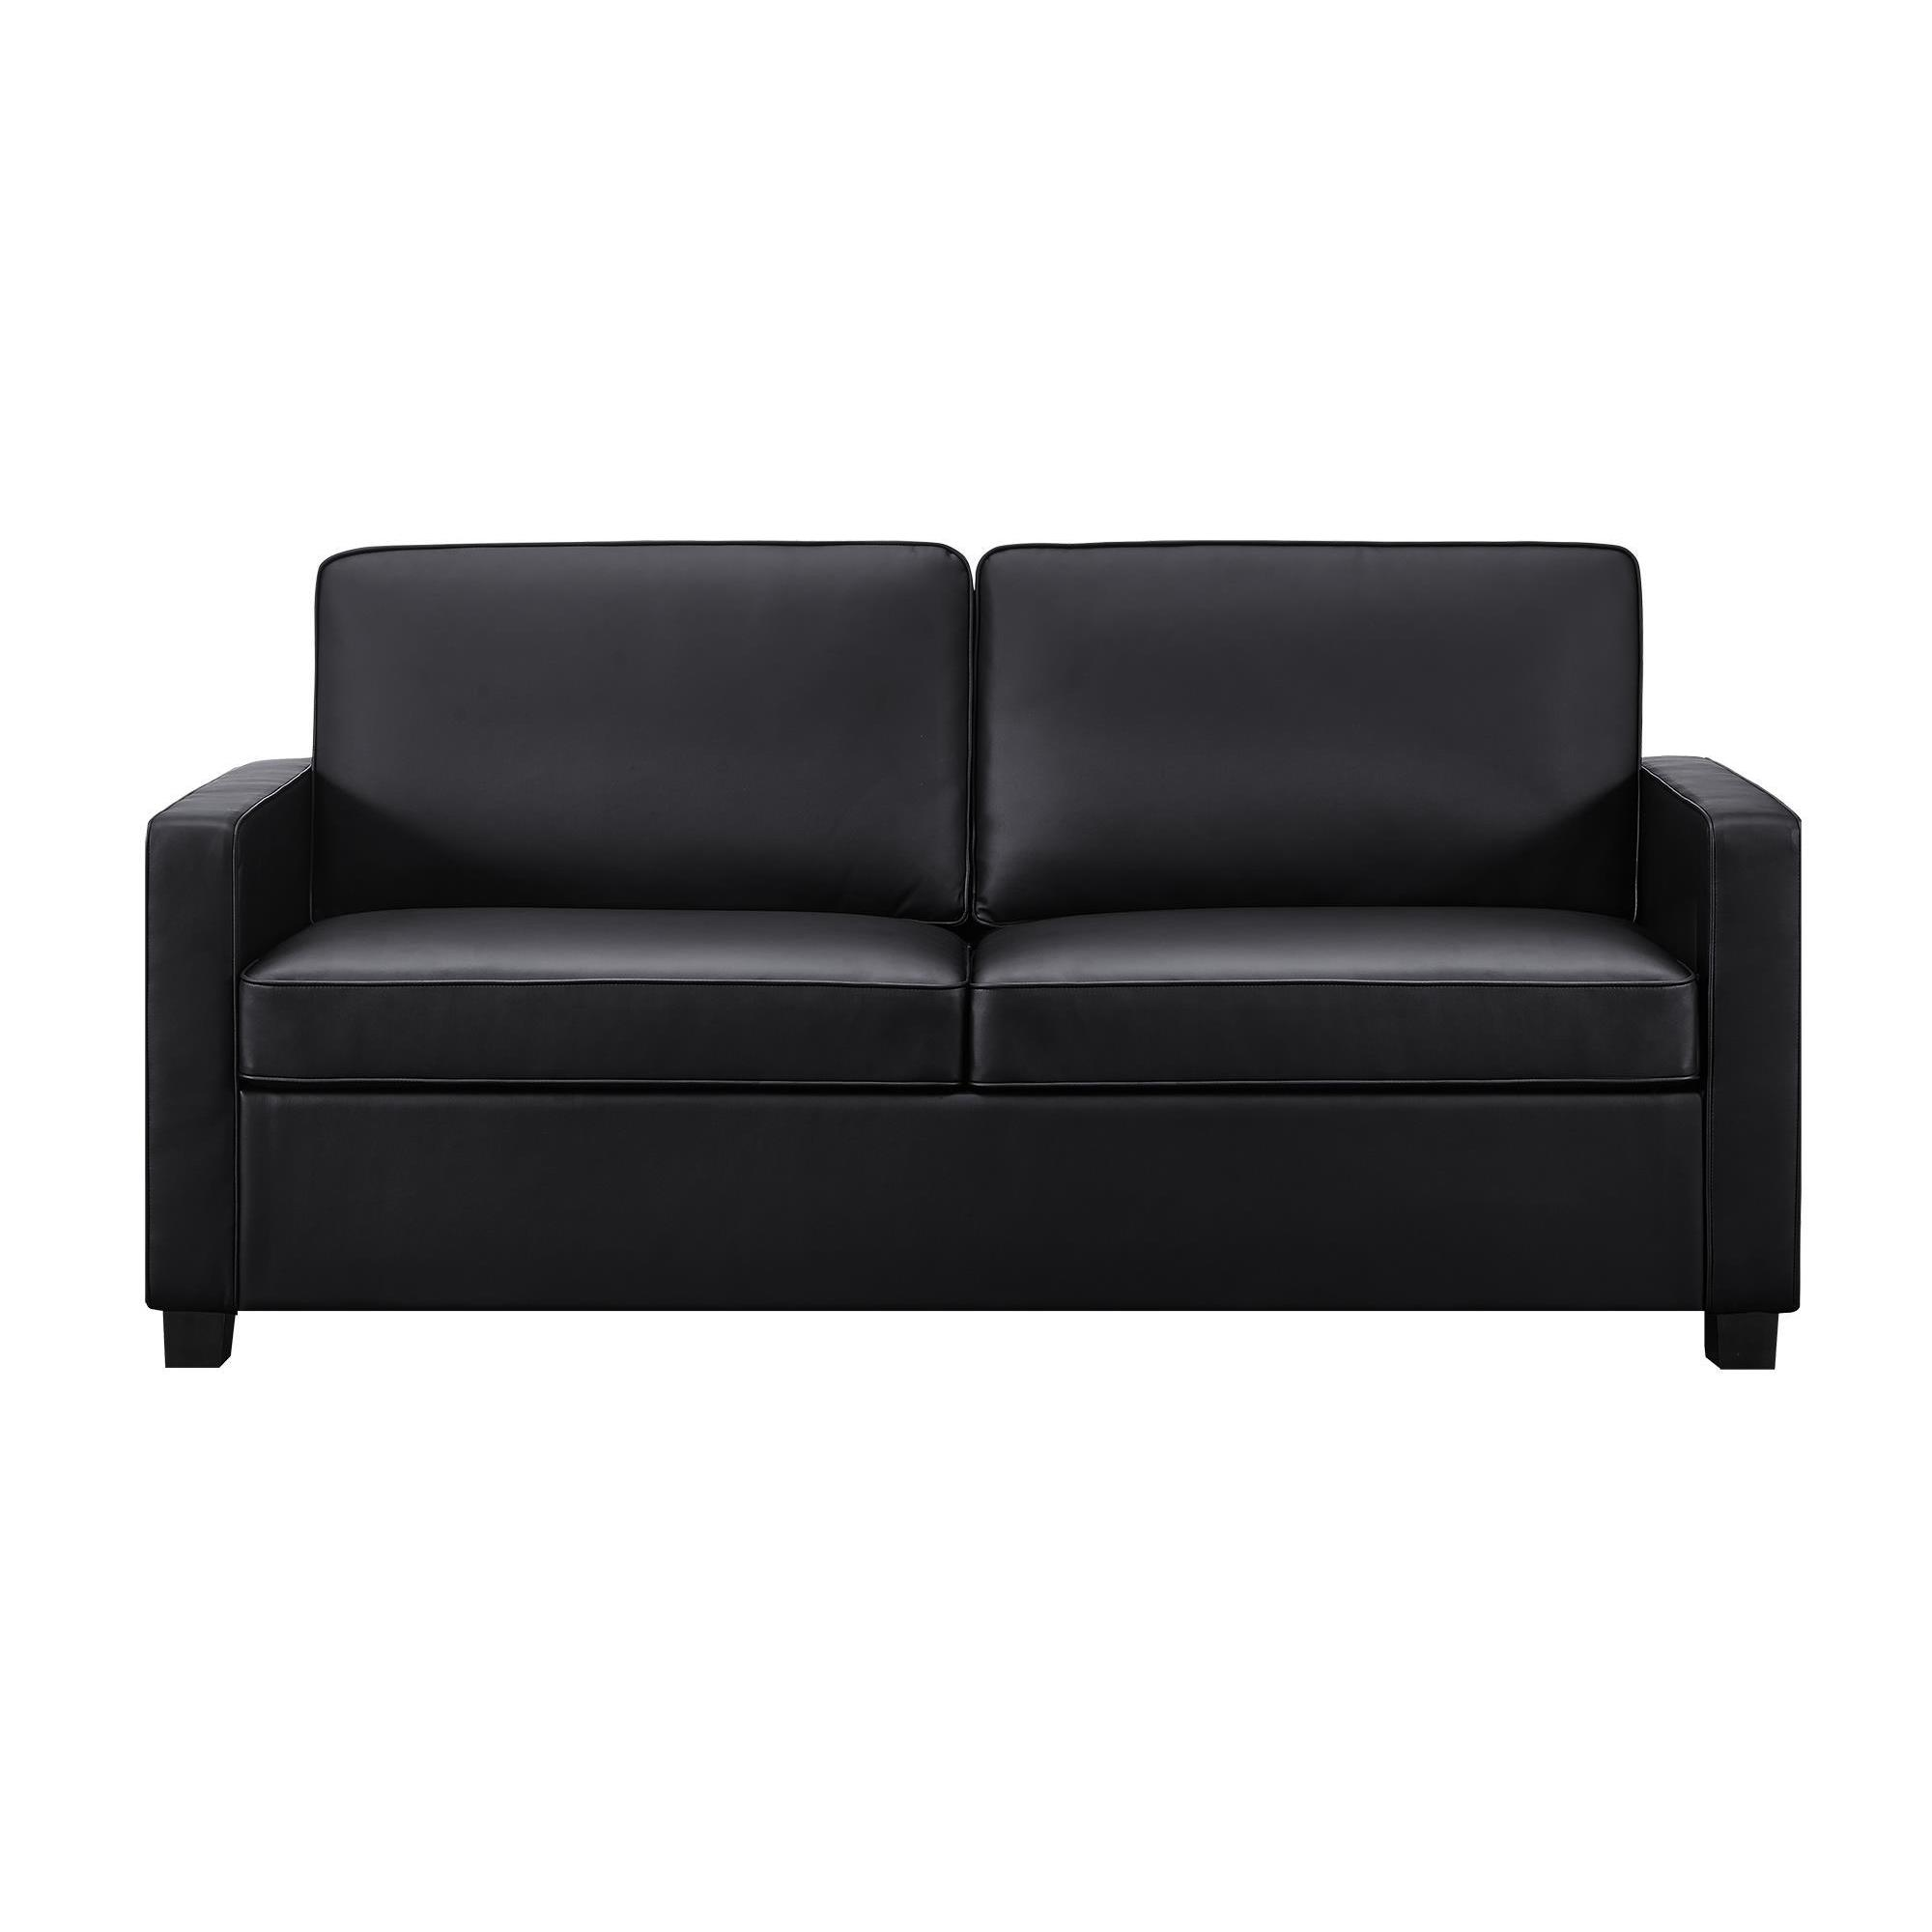 Shop Dhp Signature Sleep Casey Black Faux Leather Queen Sleeper Sofa